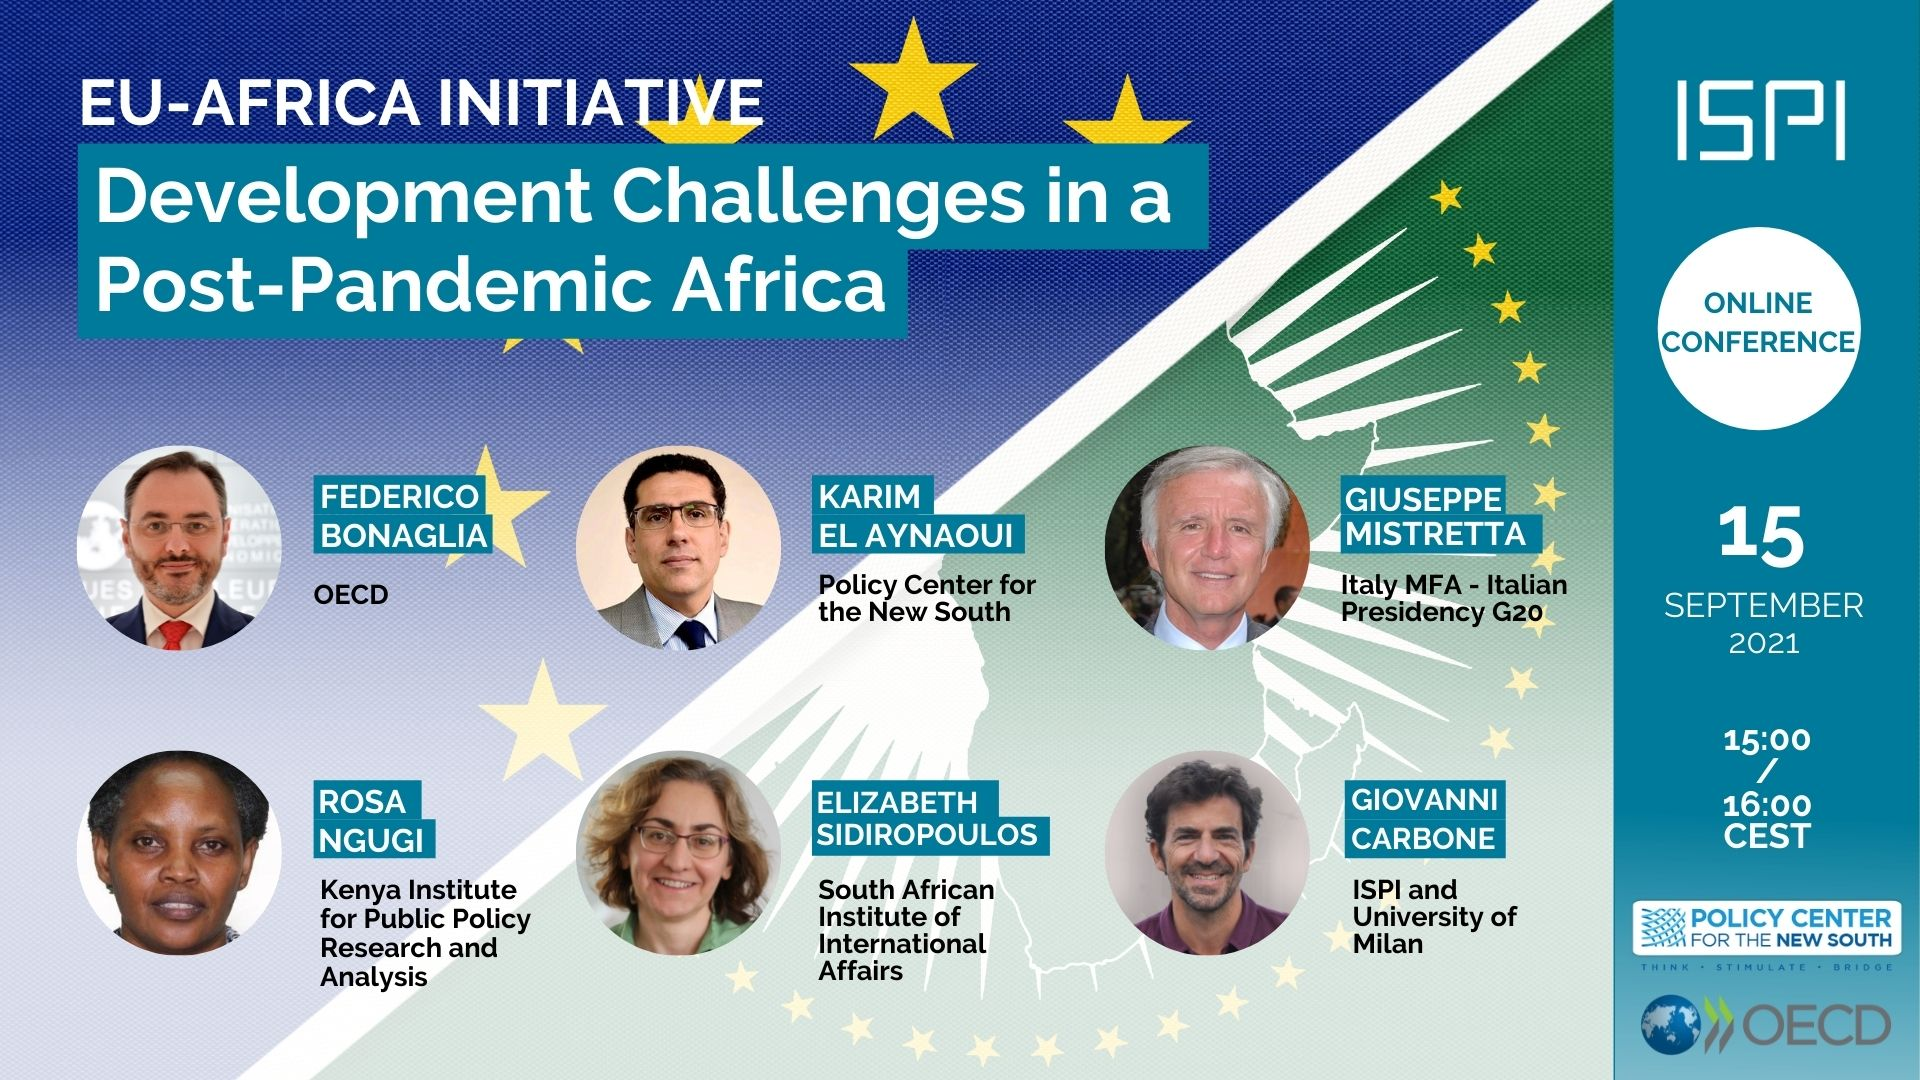 Development Challenges in a Post-Pandemic Africa